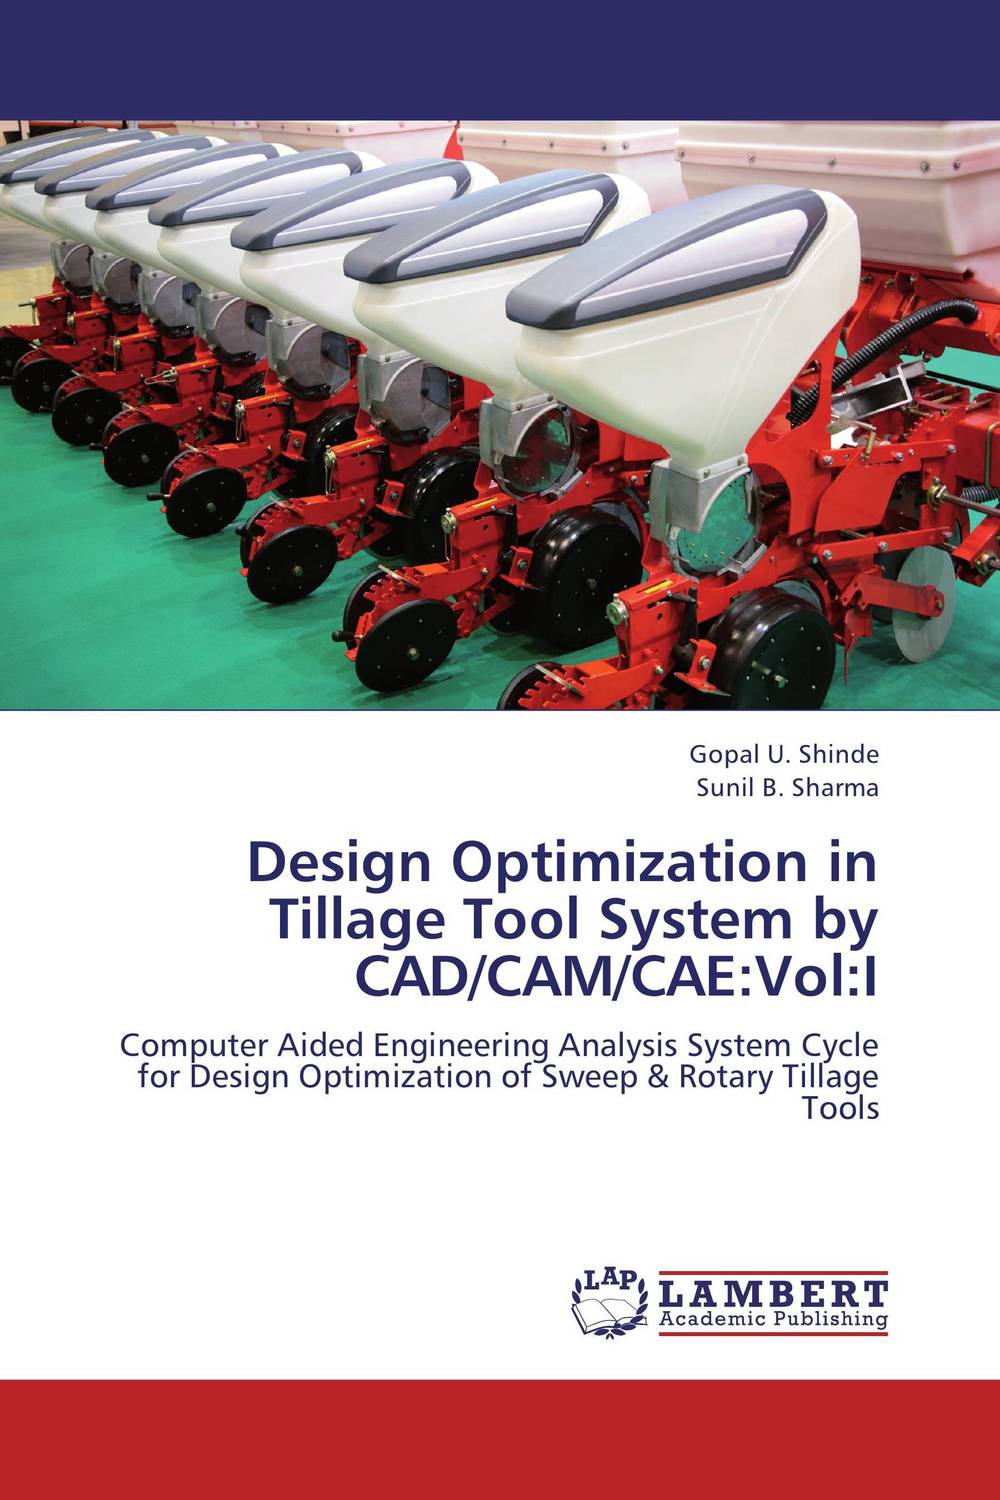 Design Optimization in Tillage Tool System by CAD/CAM/CAE:Vol:I tillage system in rice cultivation